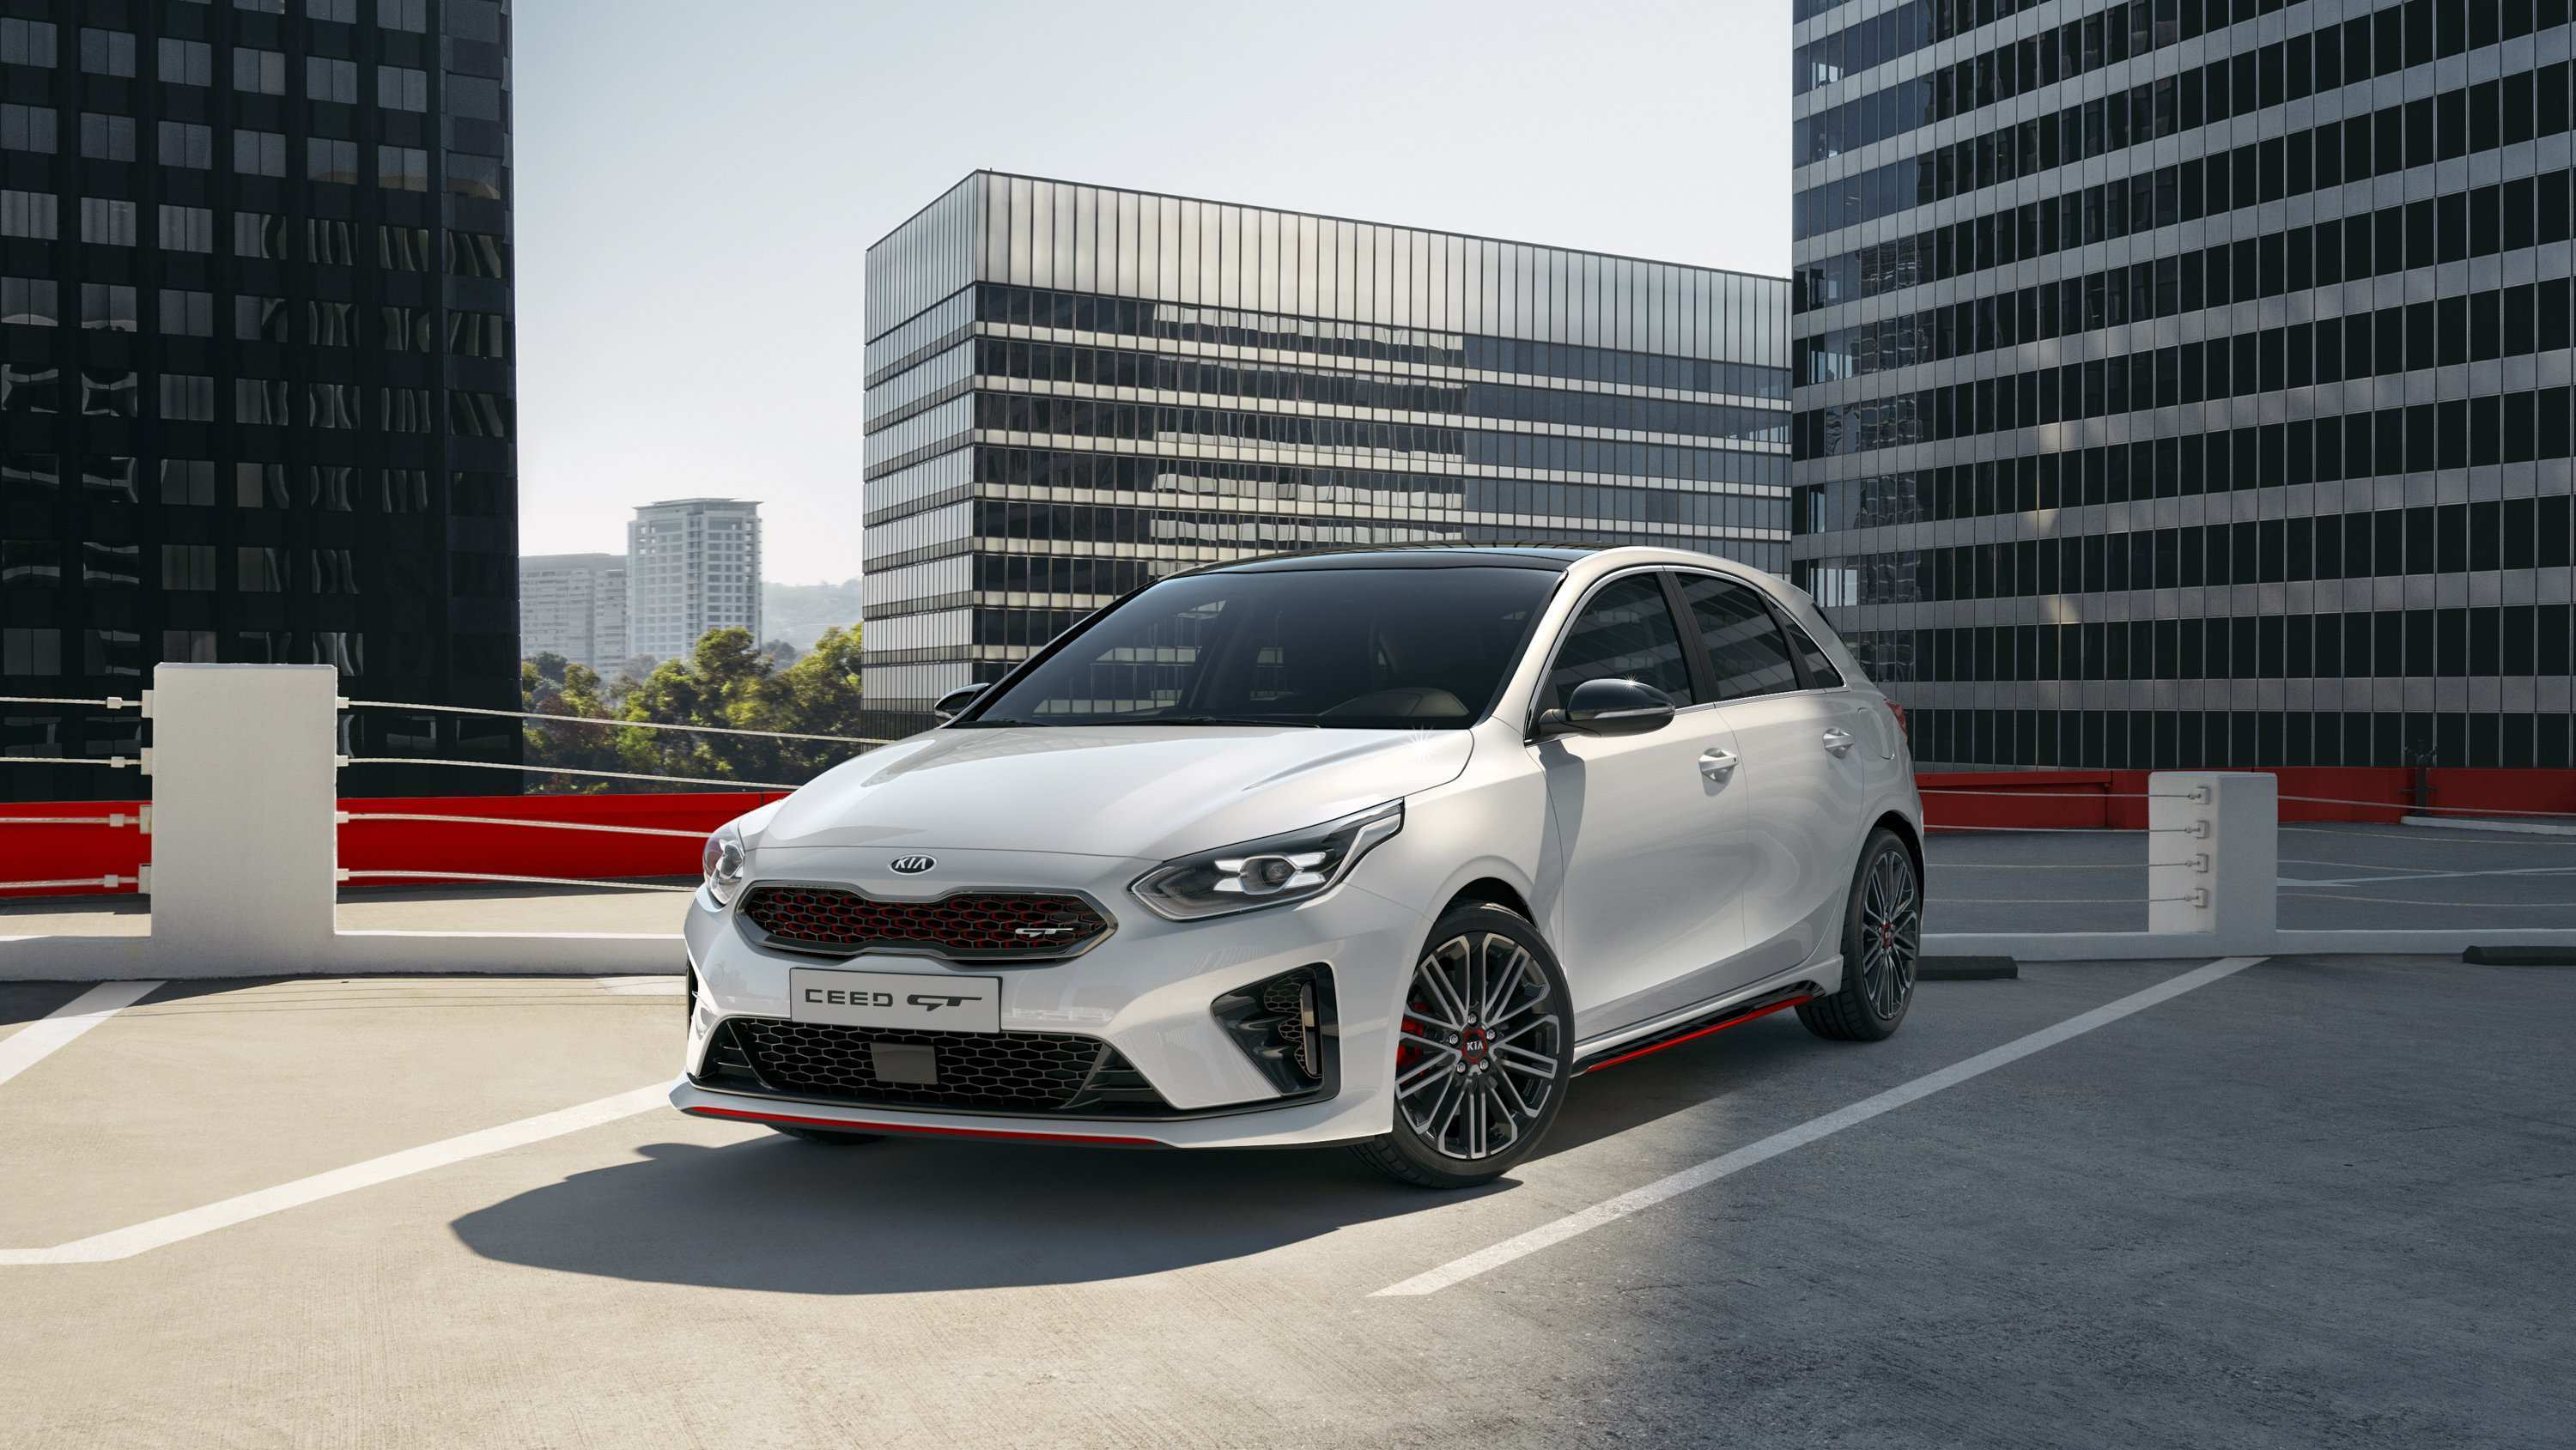 39 The Kia Pro Ceed Gt 2019 Pictures for Kia Pro Ceed Gt 2019